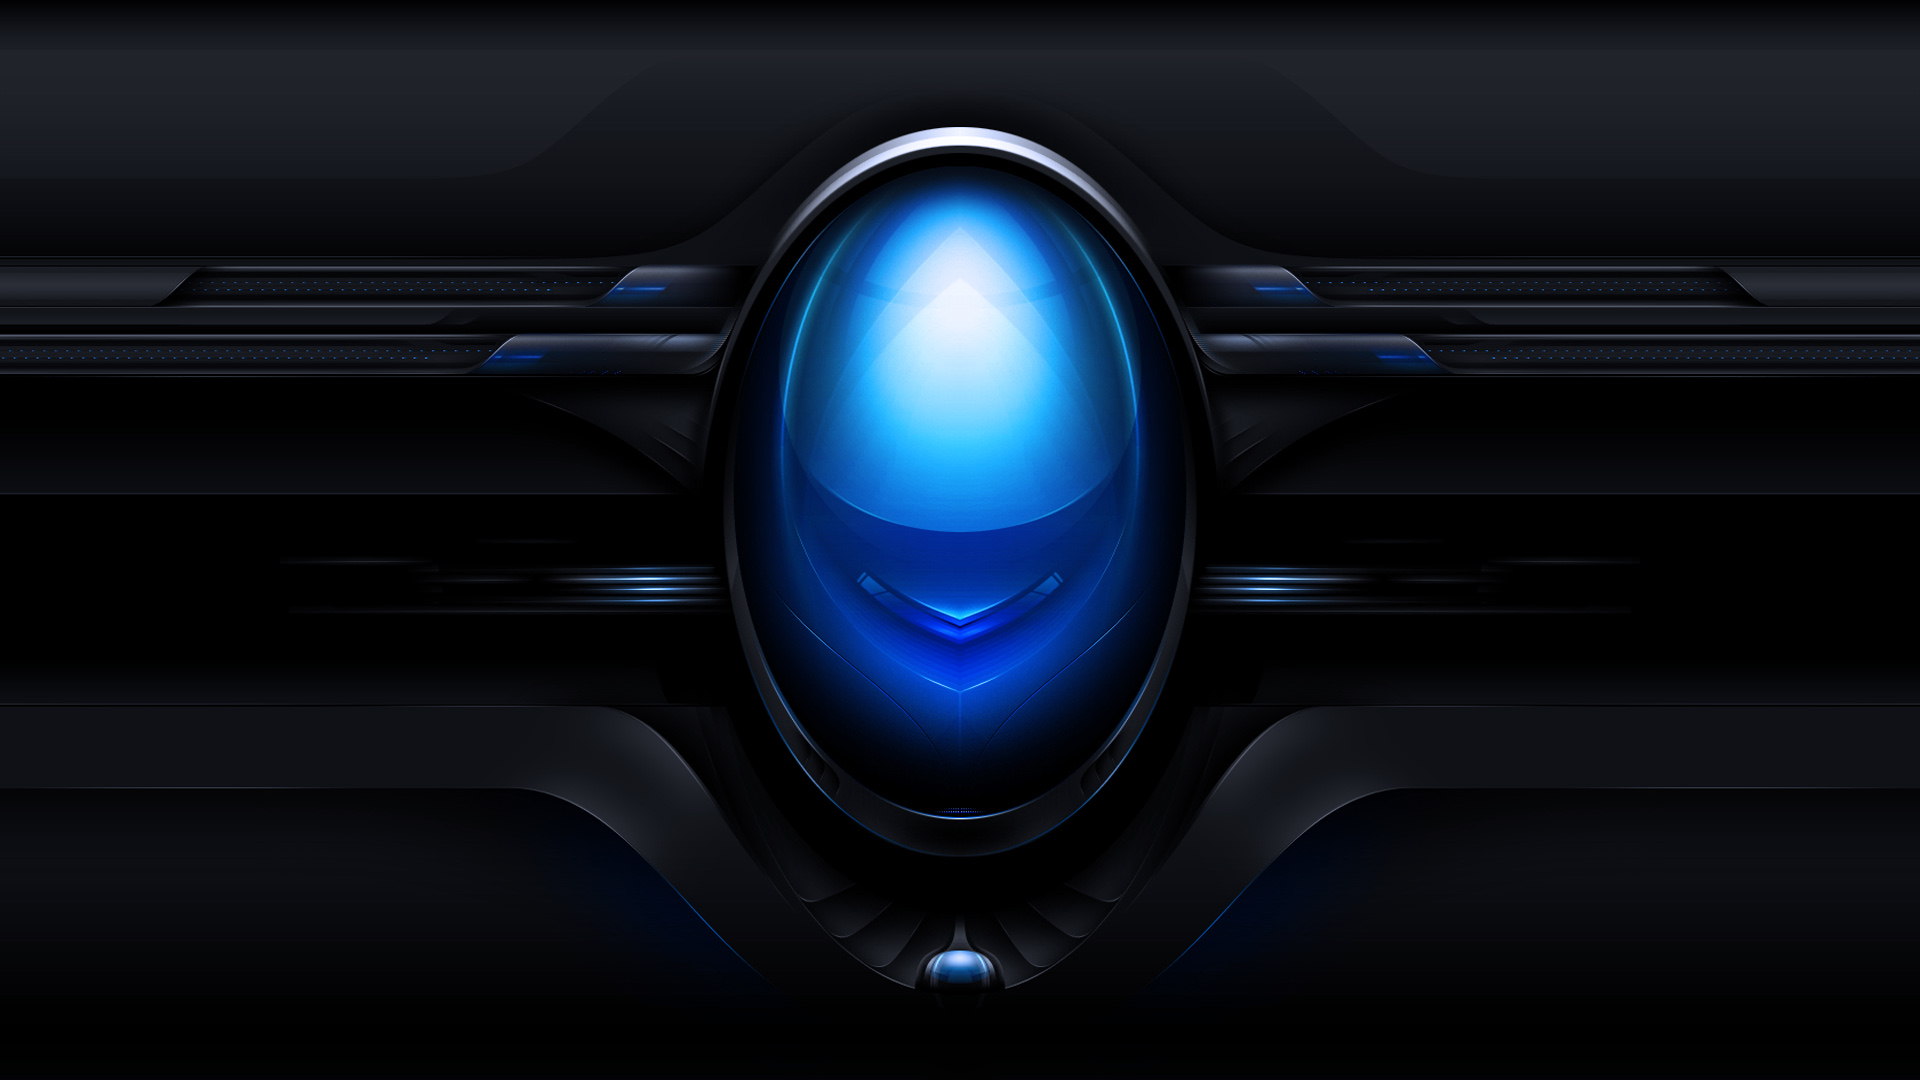 Black And Blue Alienware Wallpaper 37 Desktop Wallpaper